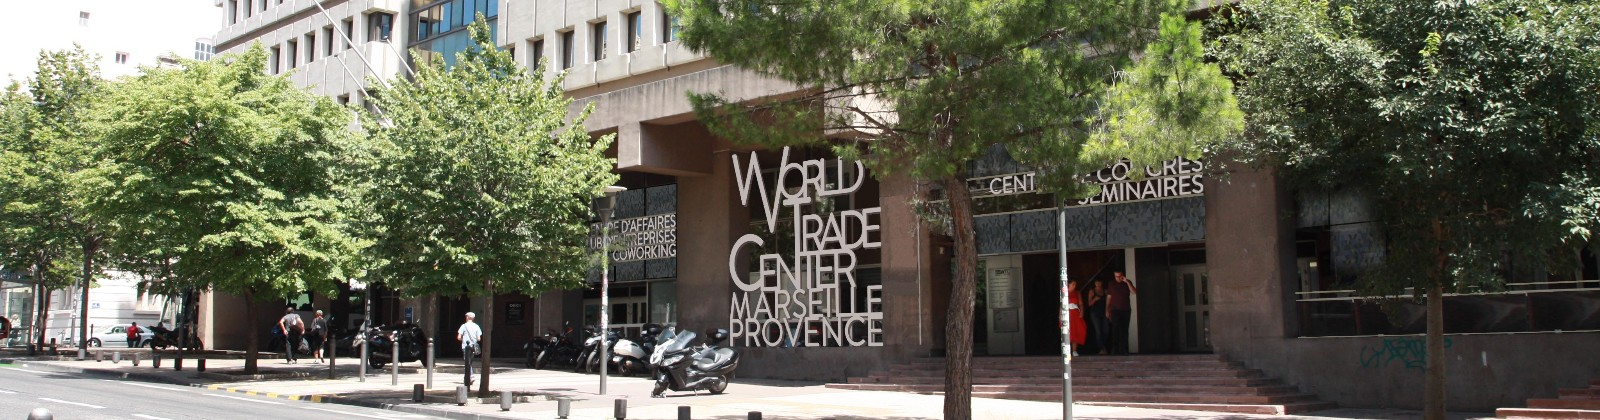 world trade center marseille provence olevene restaurant hotel meeting seminaires salle reunion